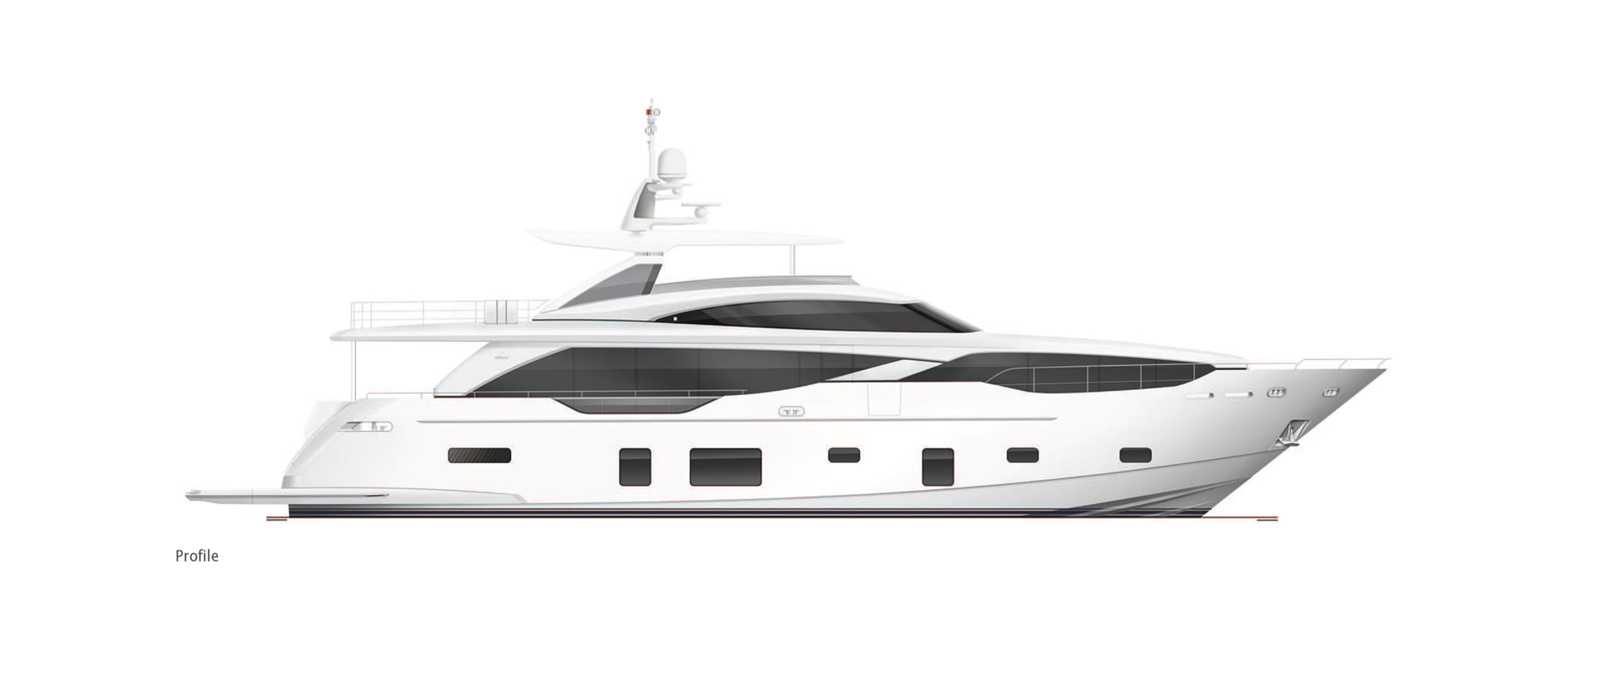 Princess 30 Metre Yacht Bandazul - Side Profile GA